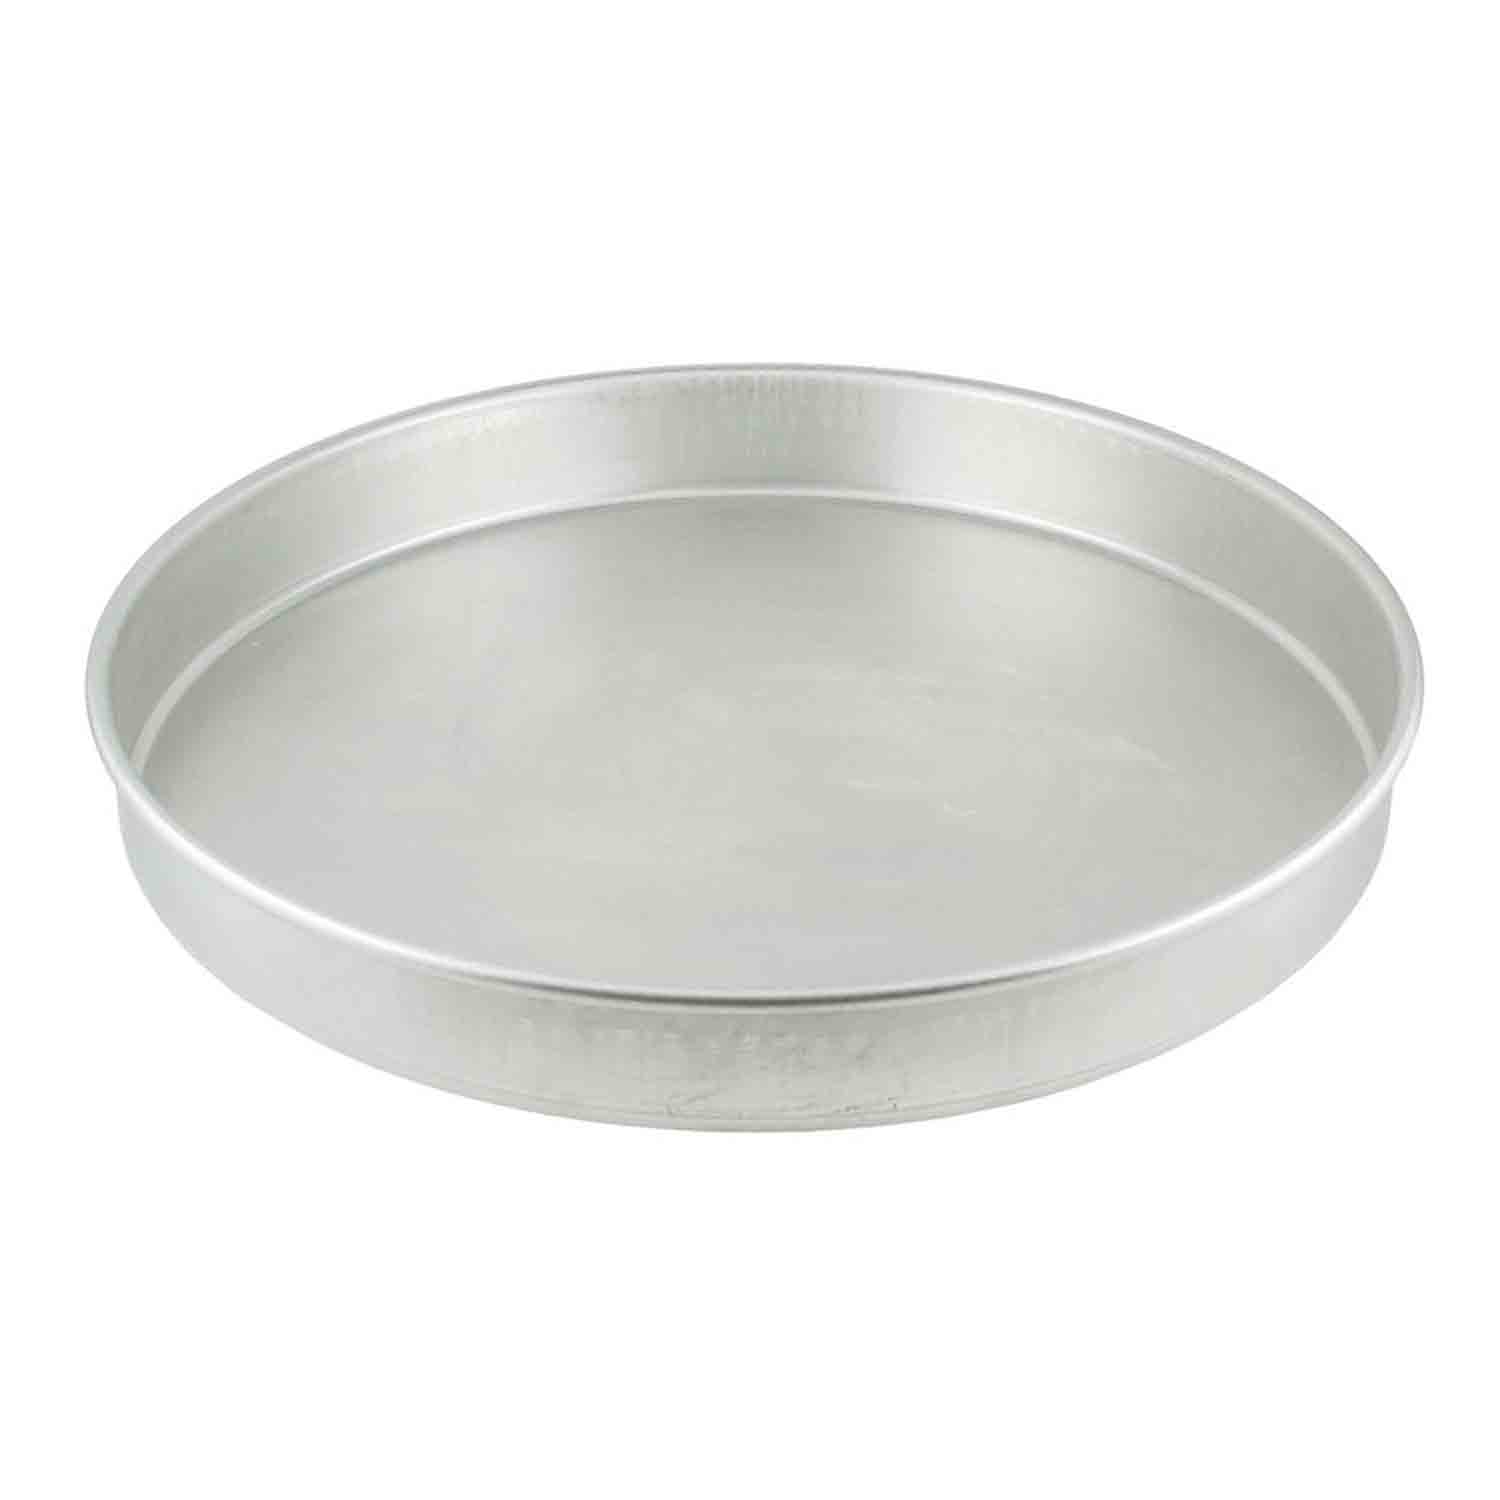 "15 x 2"" Magic Line Round Cake Pan"